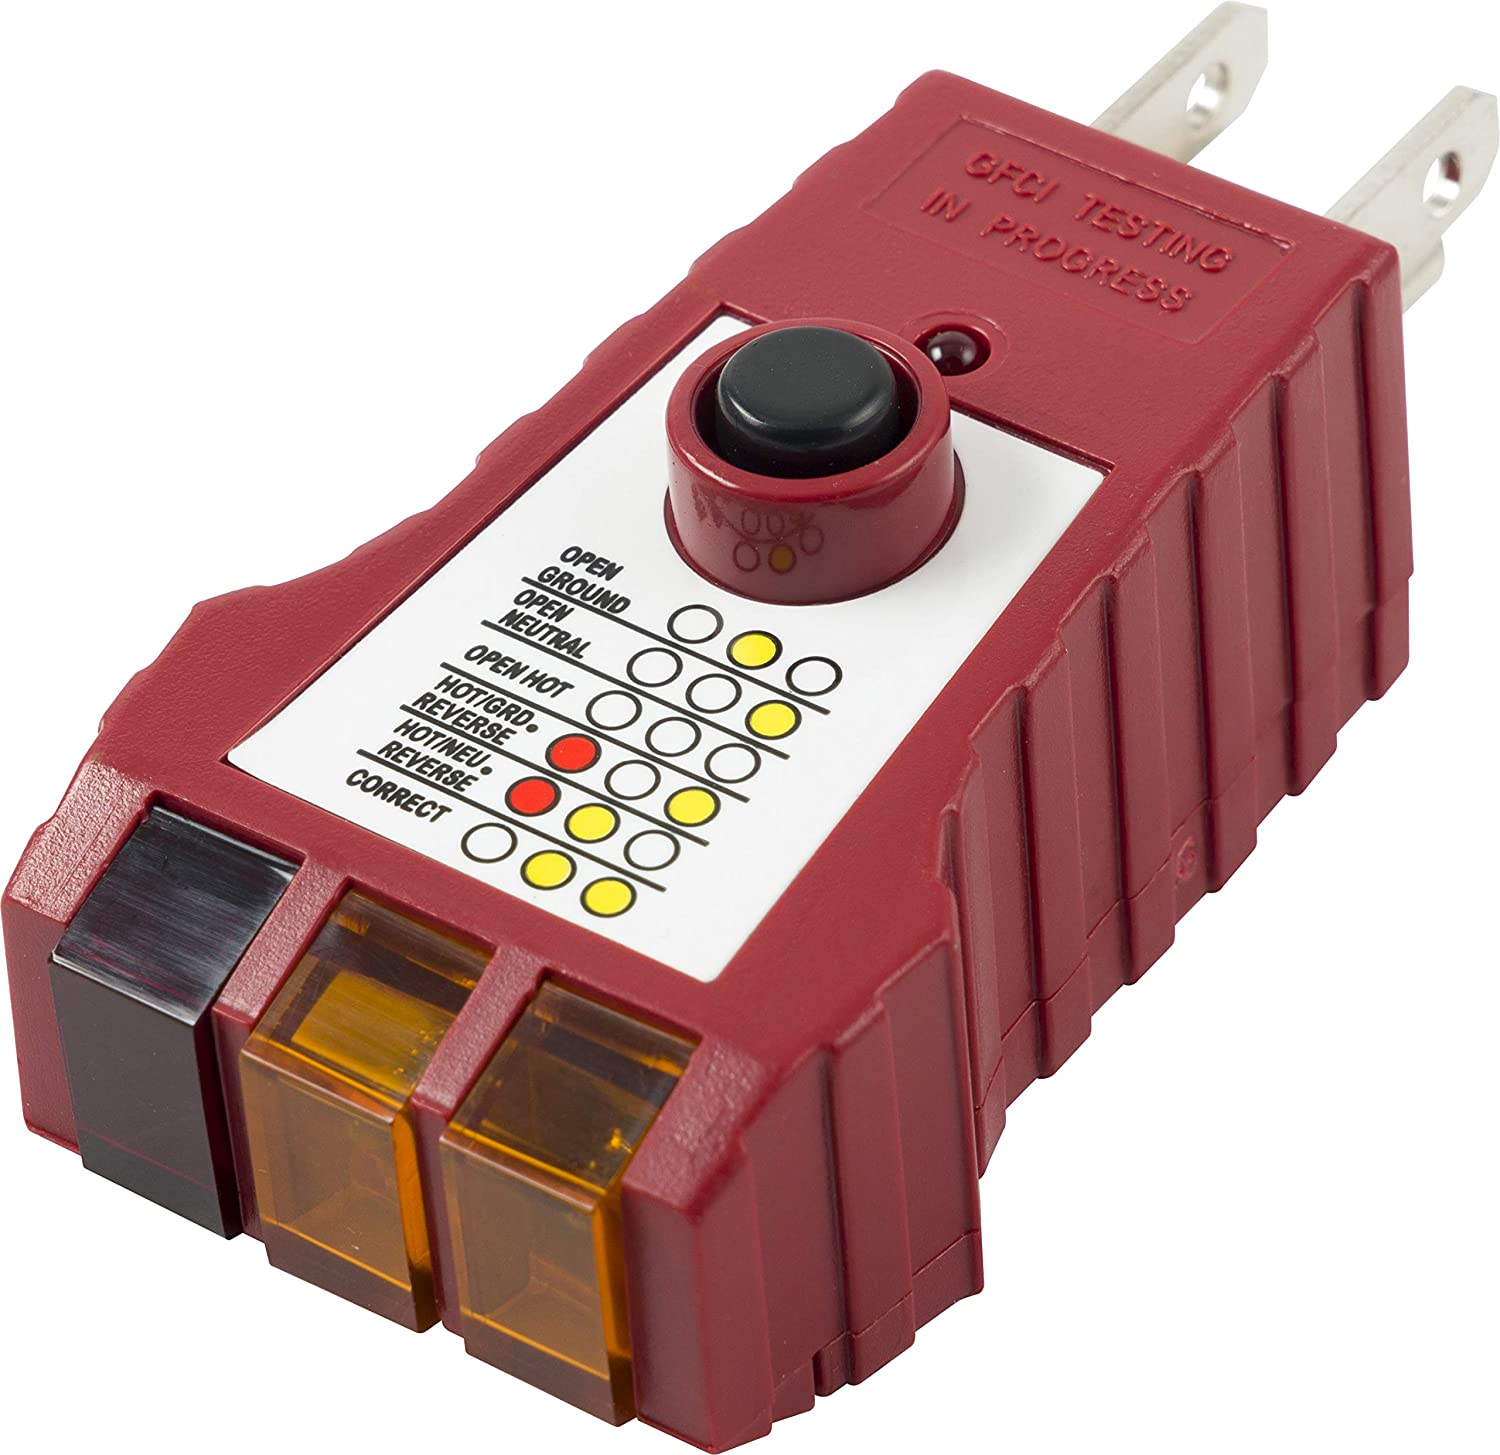 Using A Circuit Tester To Test A Switch Repair Home